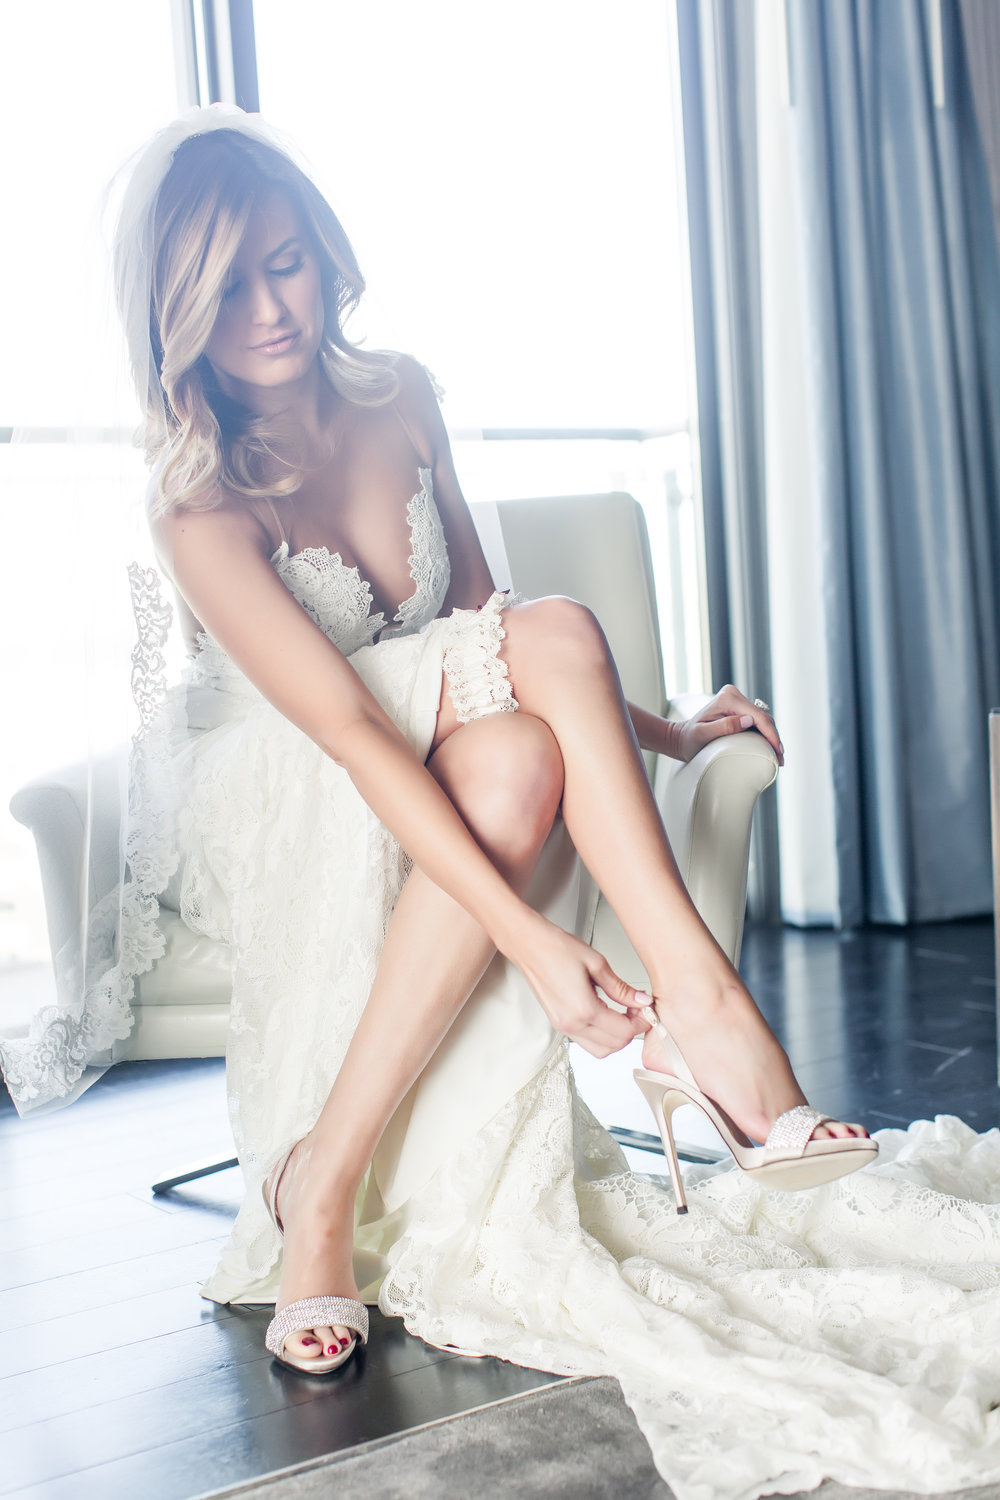 wedding shoes, high heels guiseppe zanotti, wedding day prep, wedding dress, wedding gown